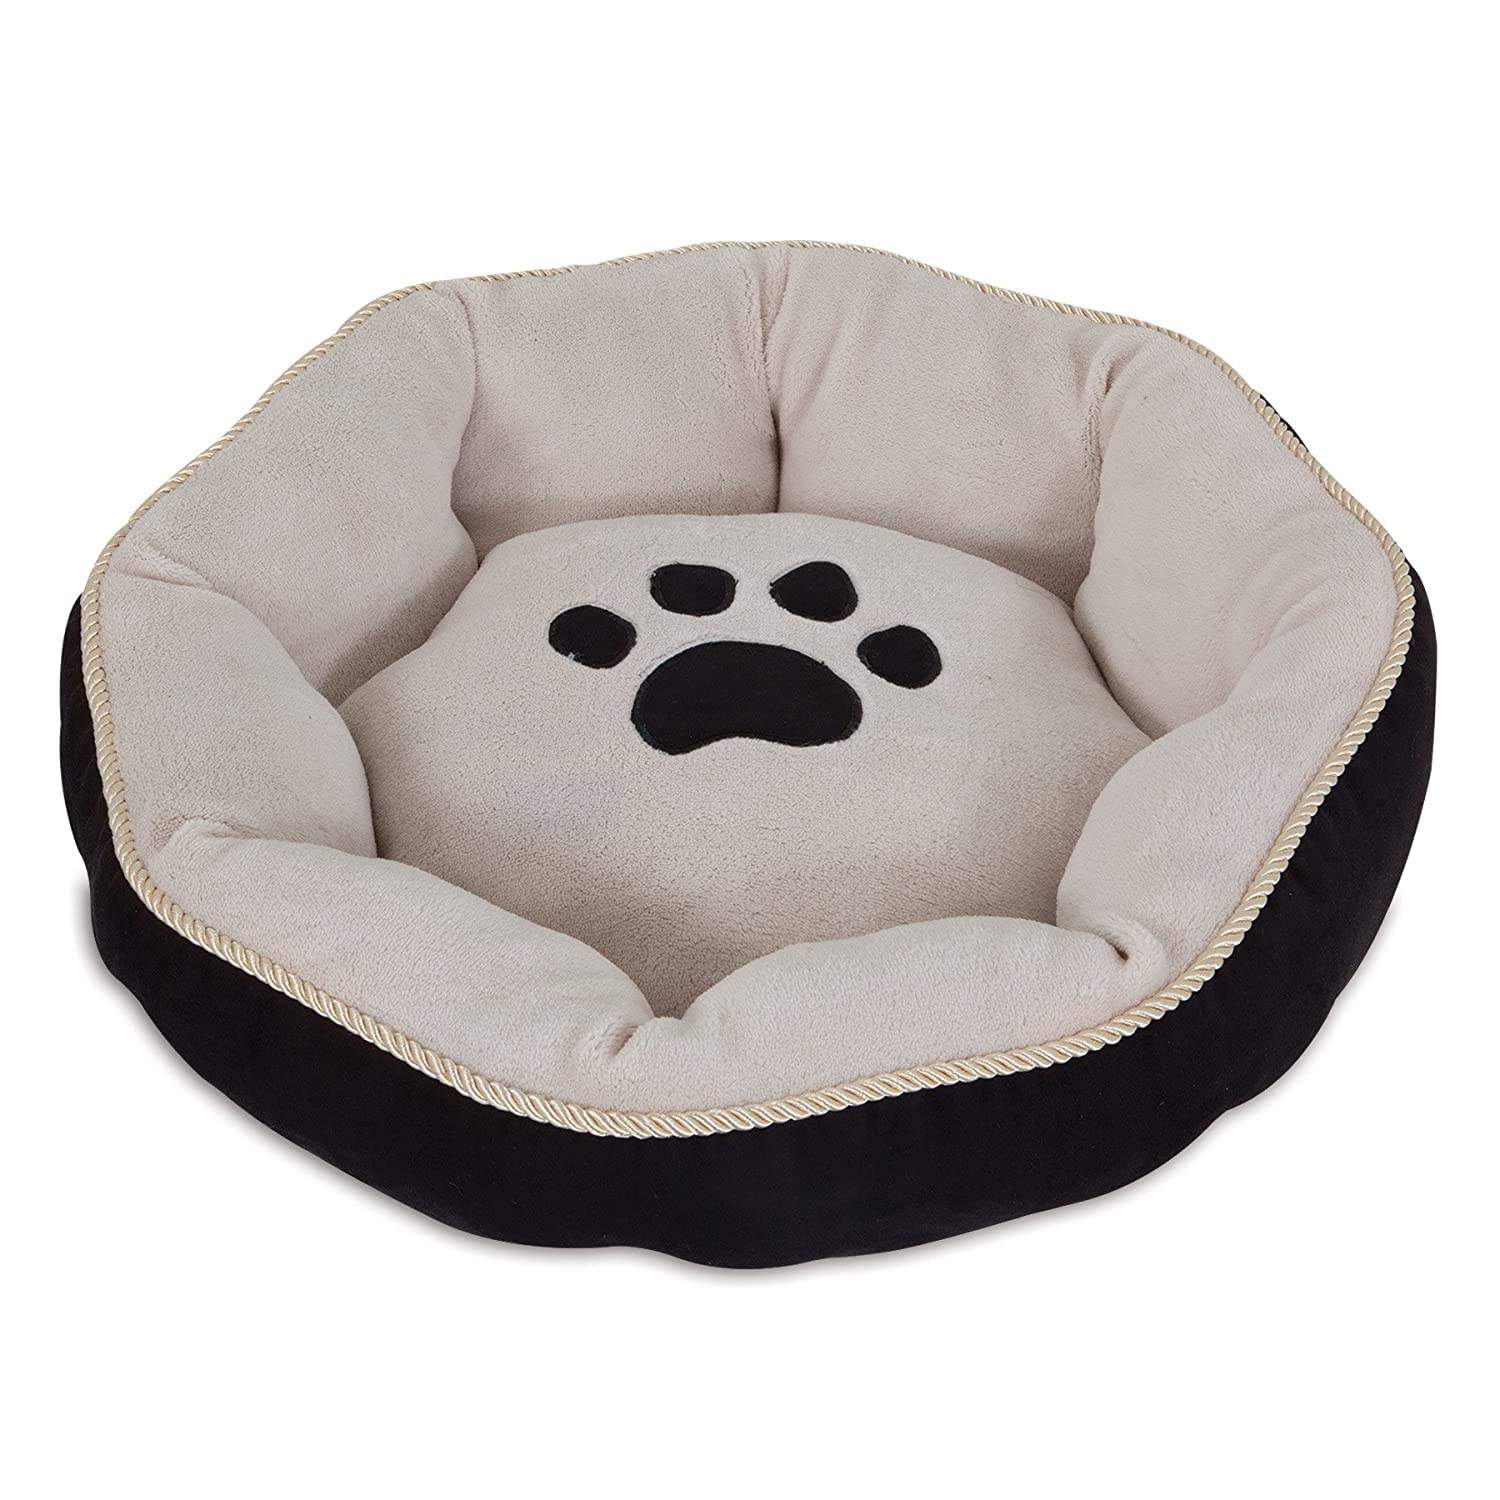 Aspen Pet Round Bed with Paw Applique & gold Cord, colors May Vary